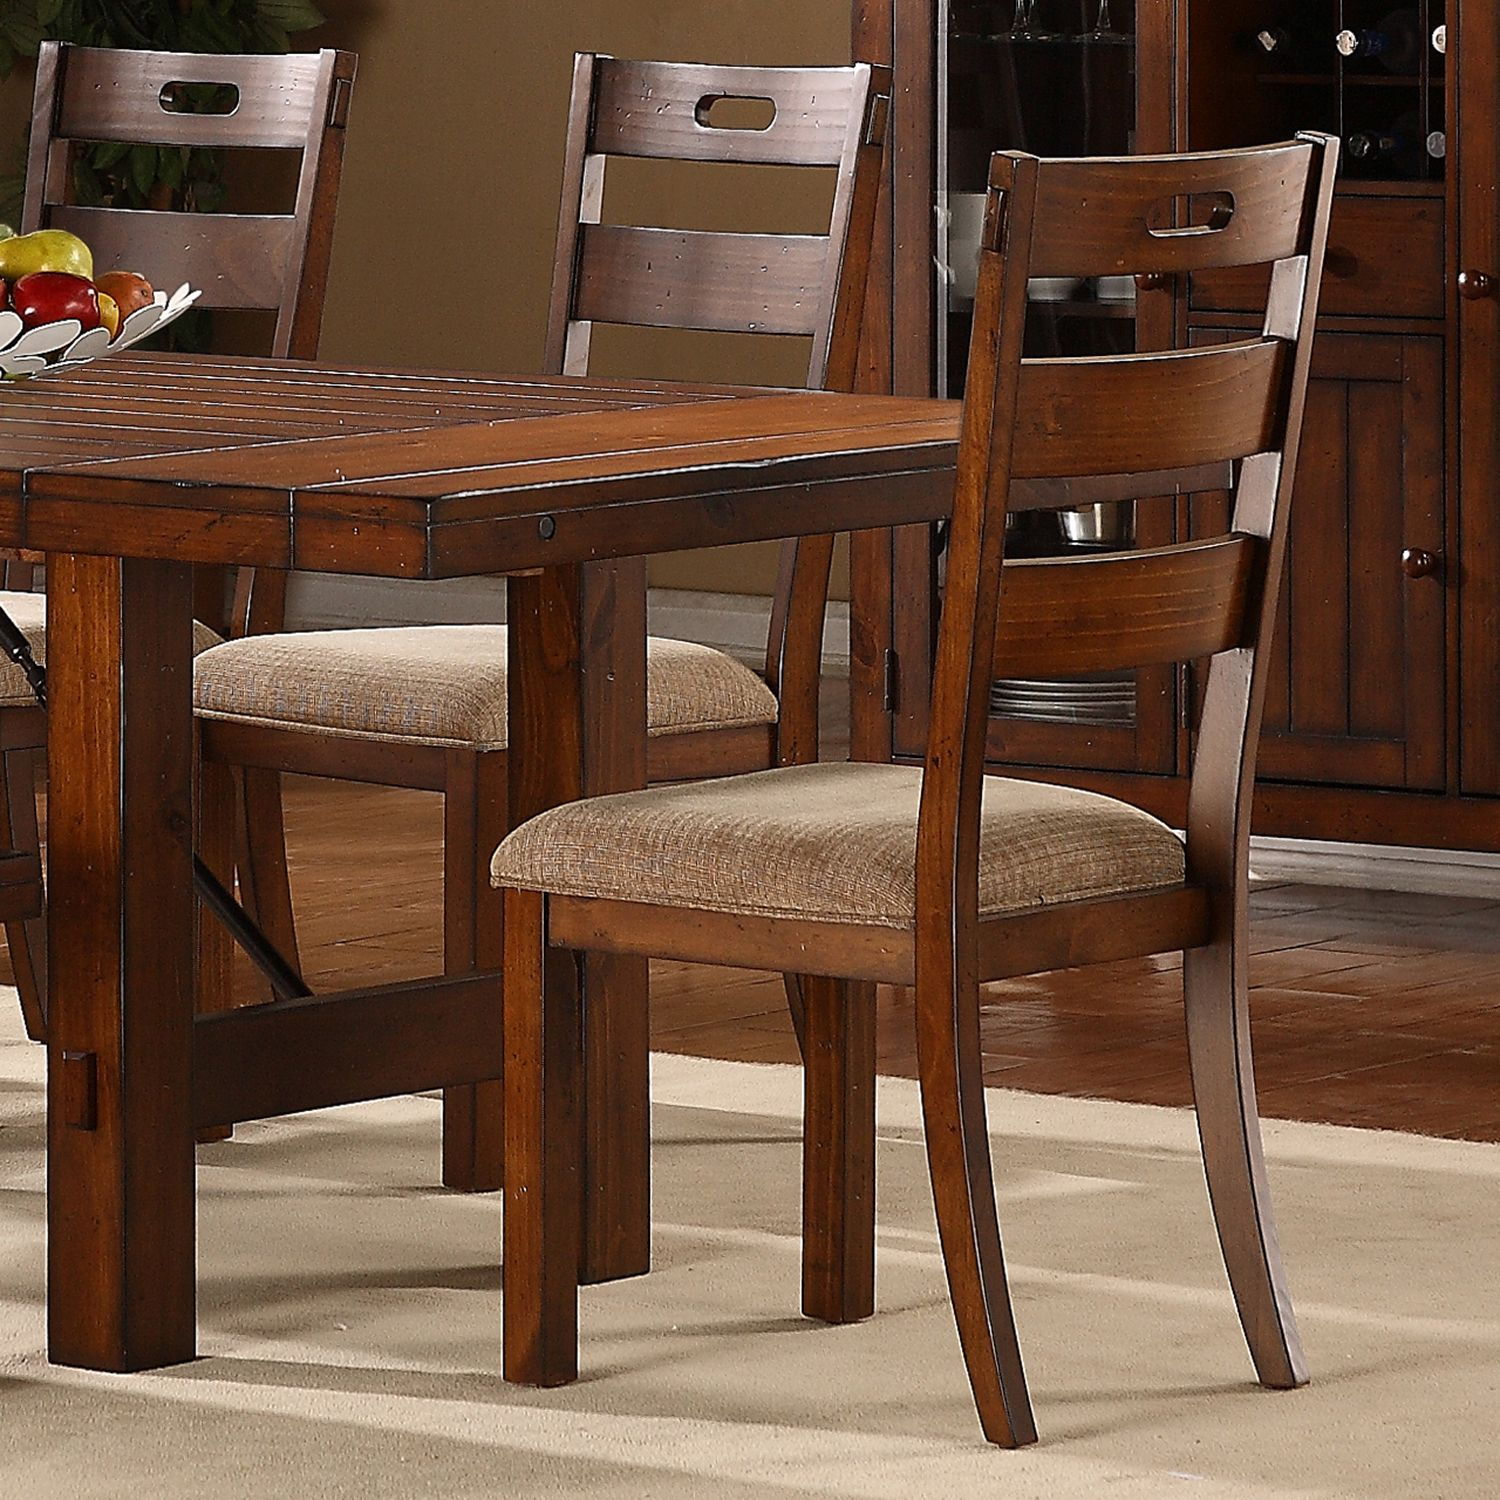 Swindon Rustic Oak Classic Dining Chair (Set of 2) by ...